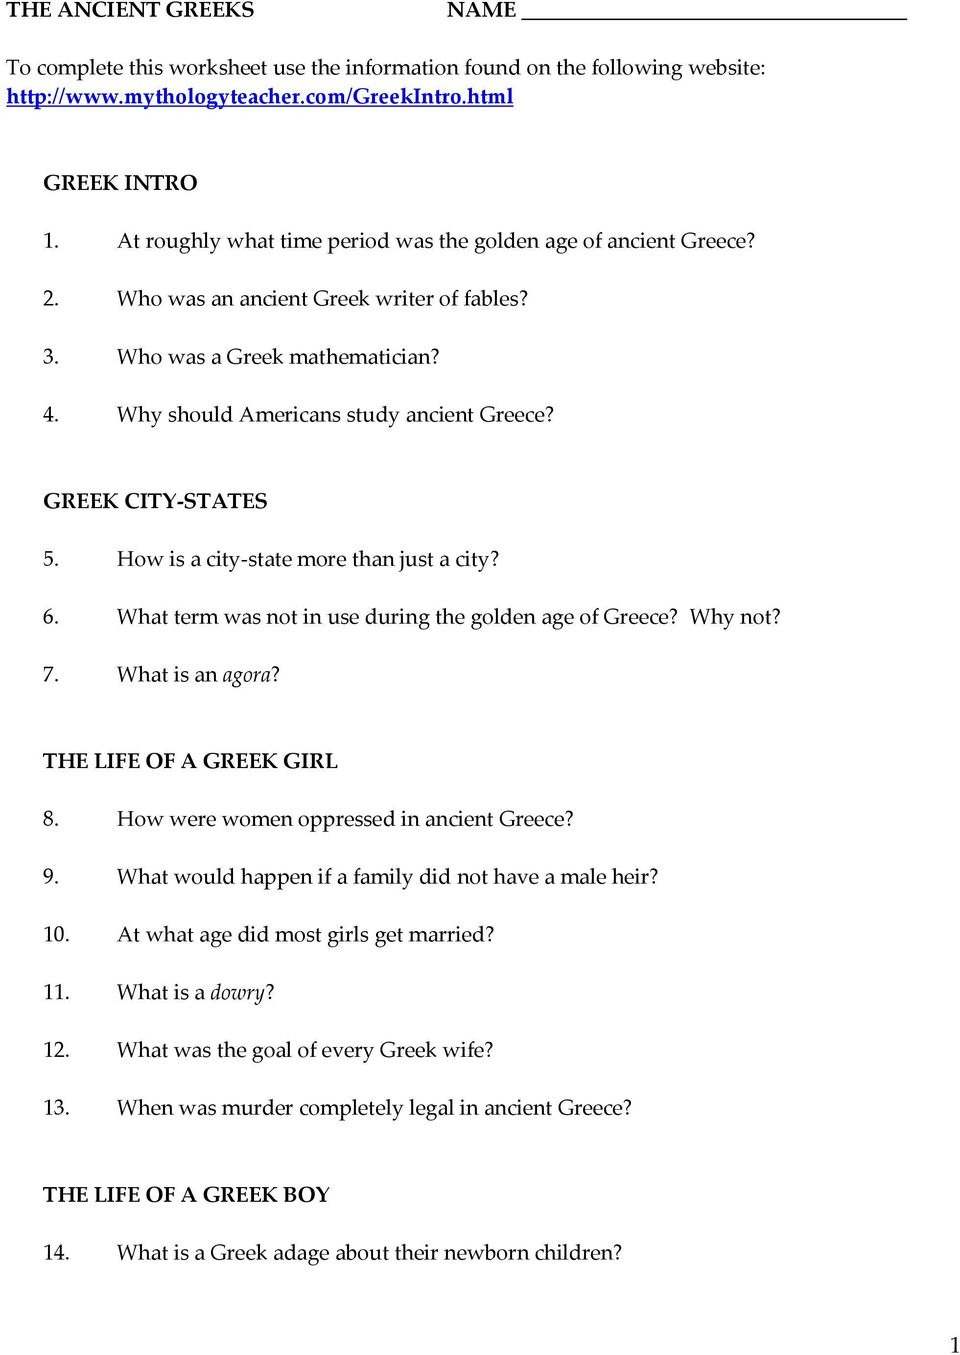 Worksheet Ancient Greece Worksheets the ancient greeks to complete this worksheet use the